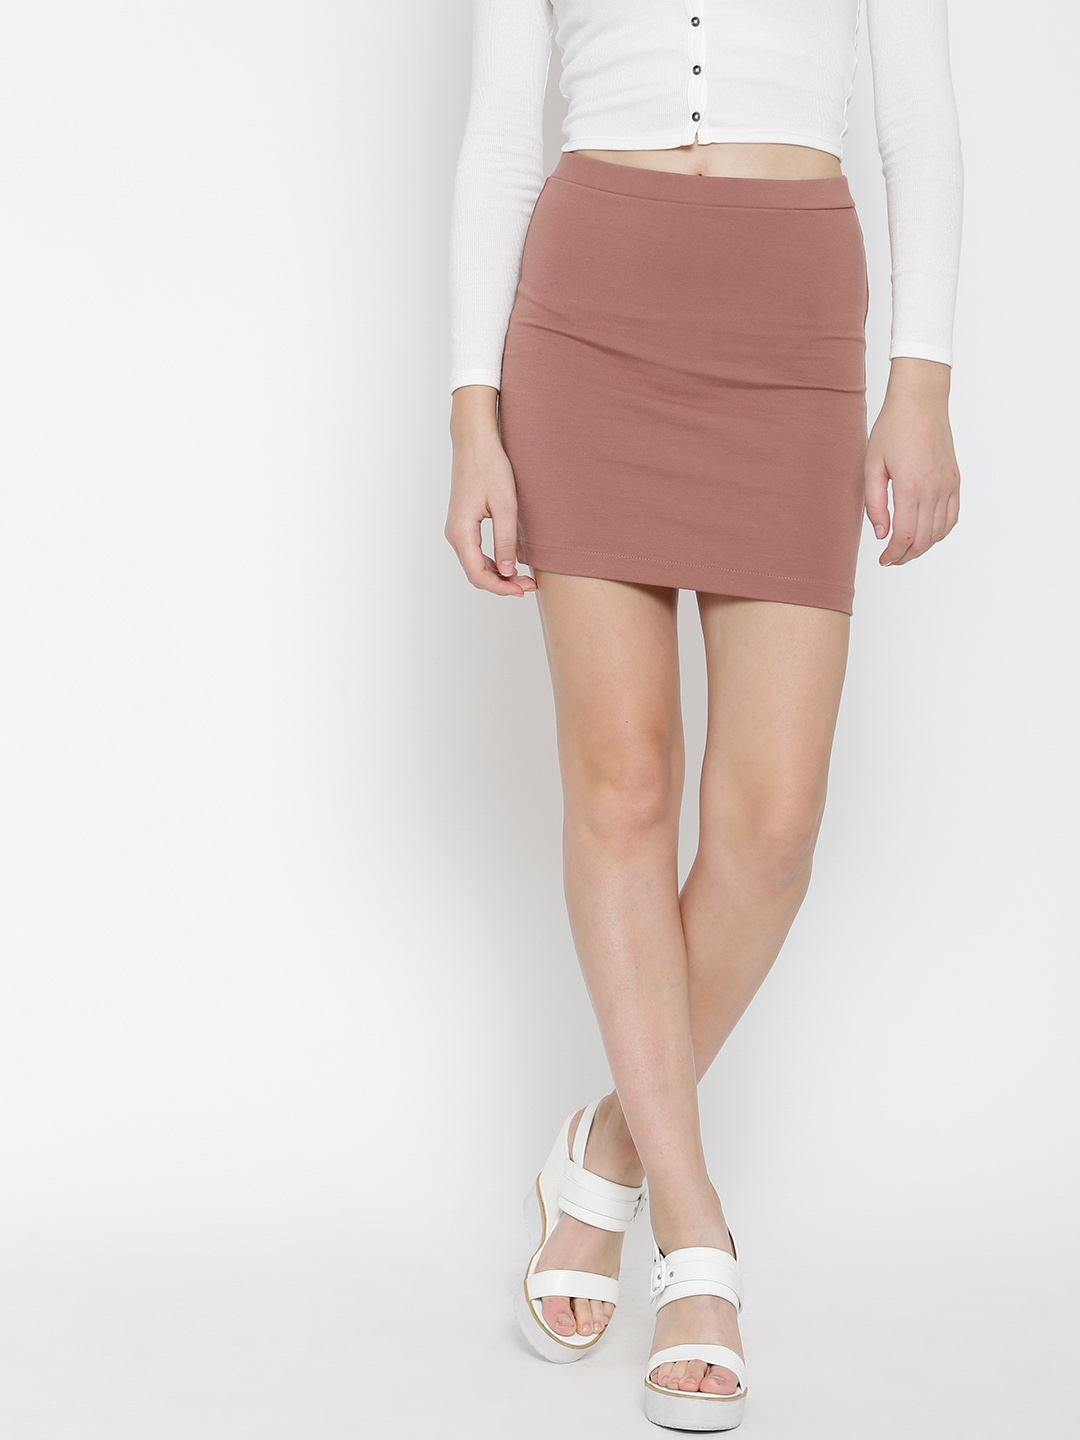 342ff38ea0 Buy FOREVER 21 Dusty Pink Pencil Mini Skirt - Skirts for Women ...